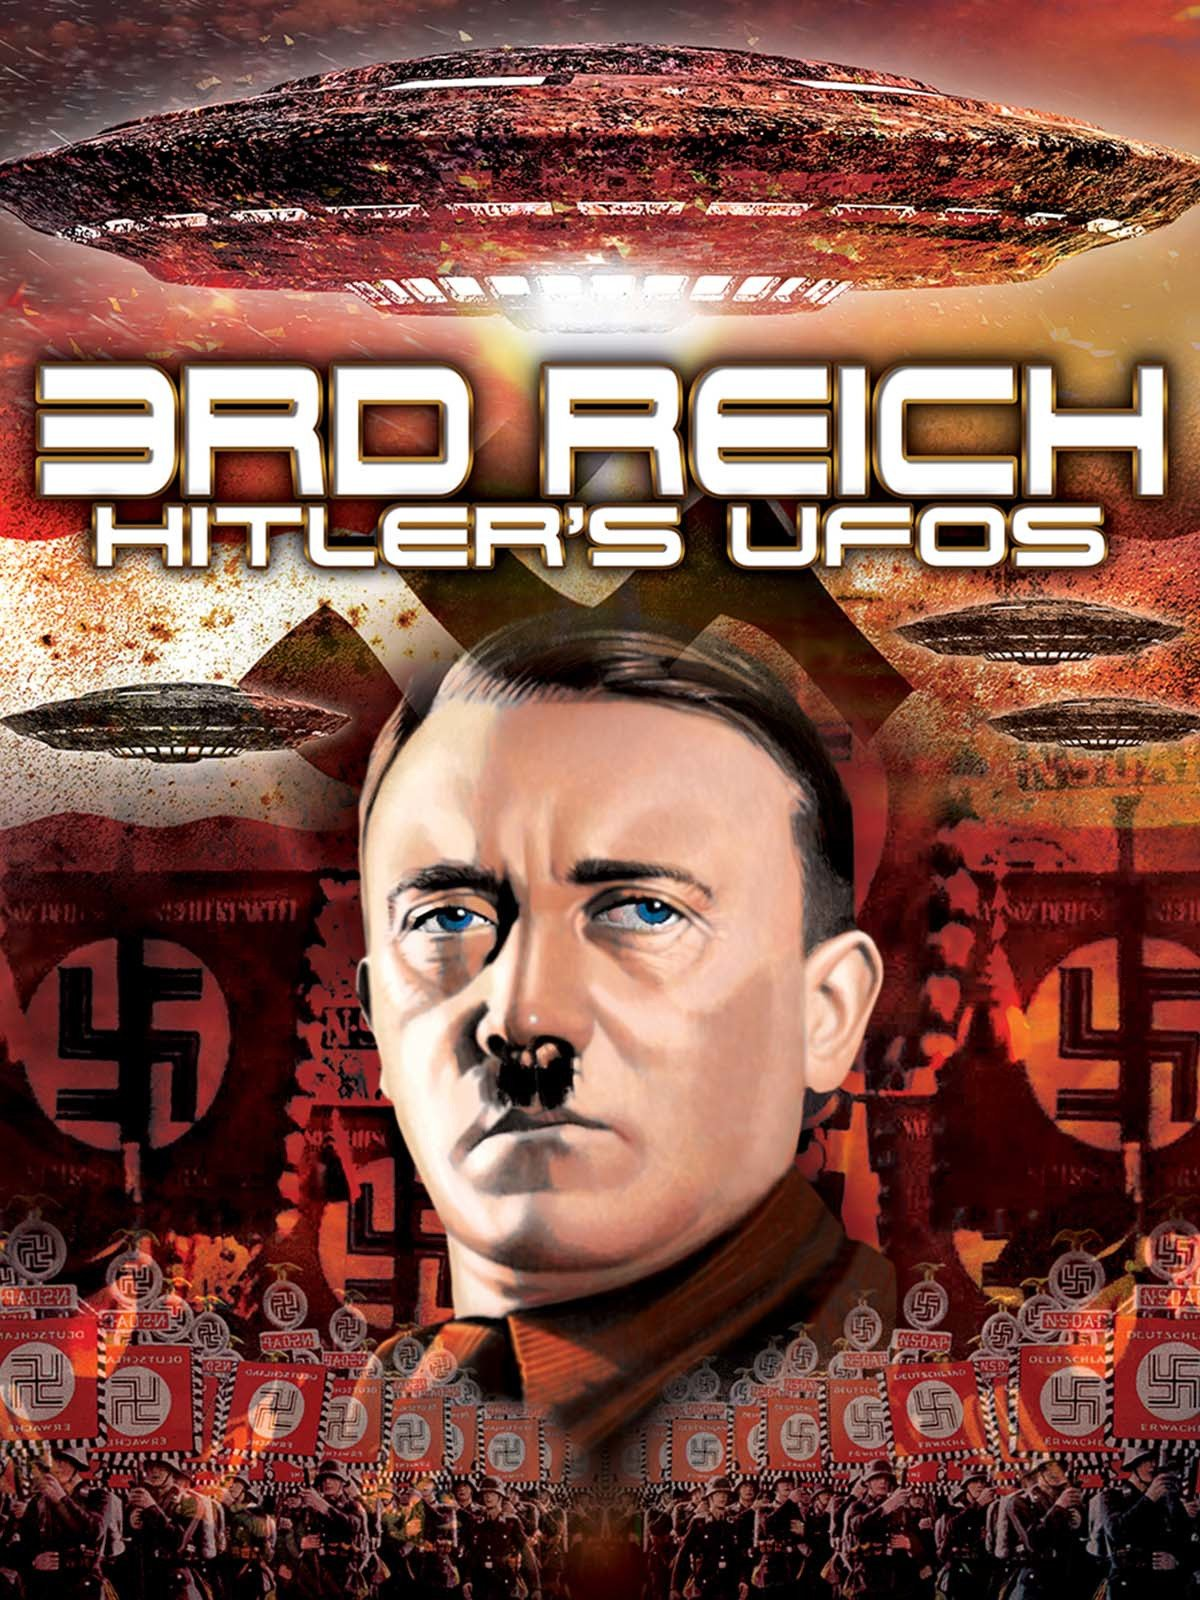 3rd Reich: Hitler's UFOs on Amazon Prime Video UK